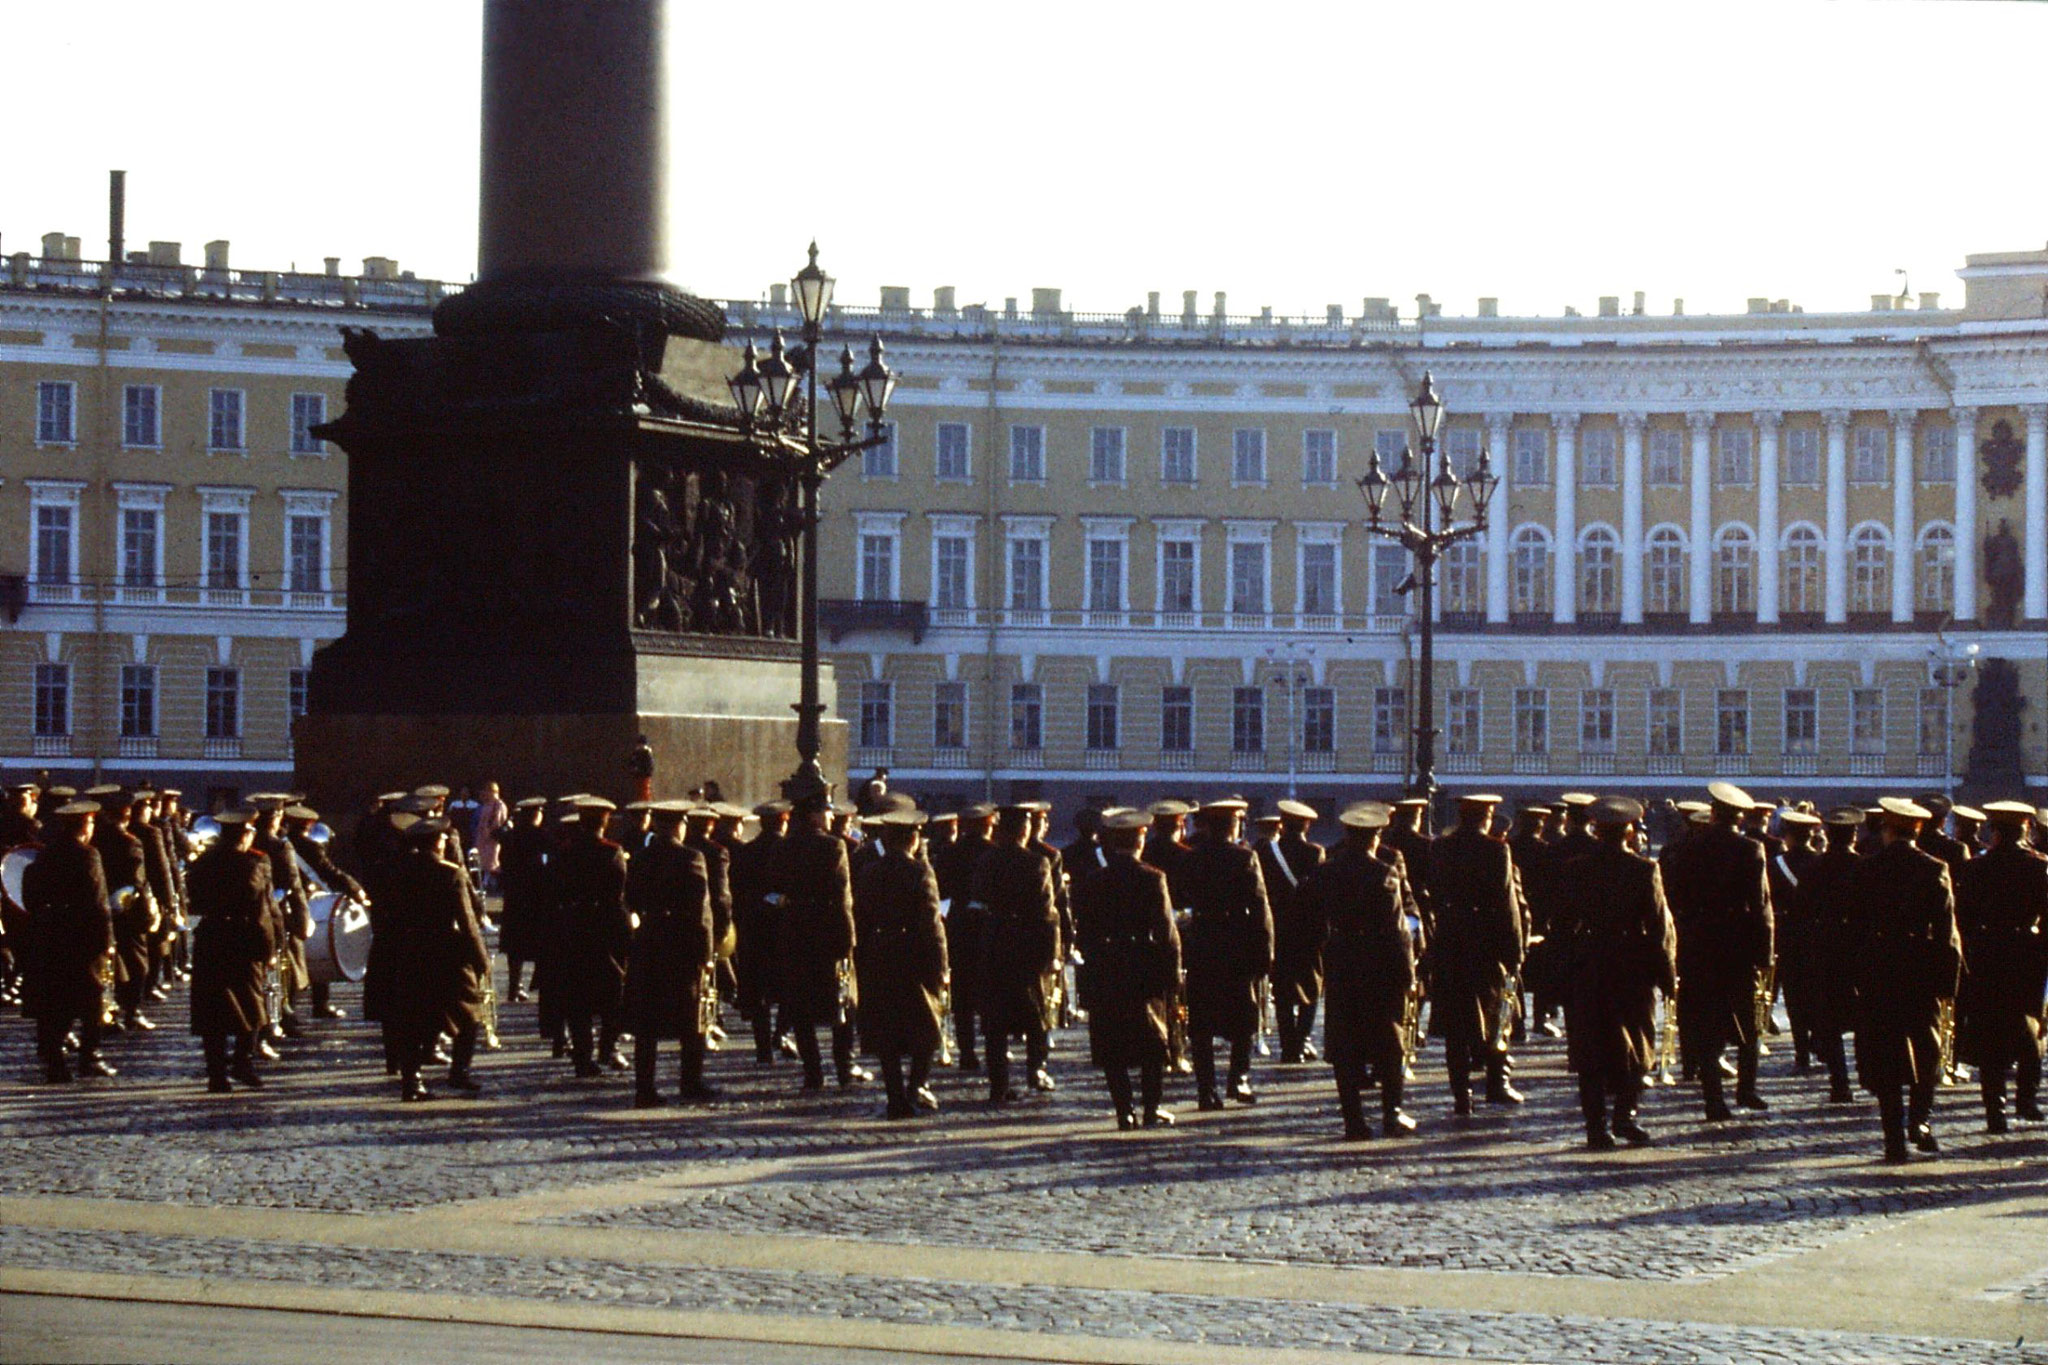 13/10/1988: 17:  Leningrad band in front of Hermitage